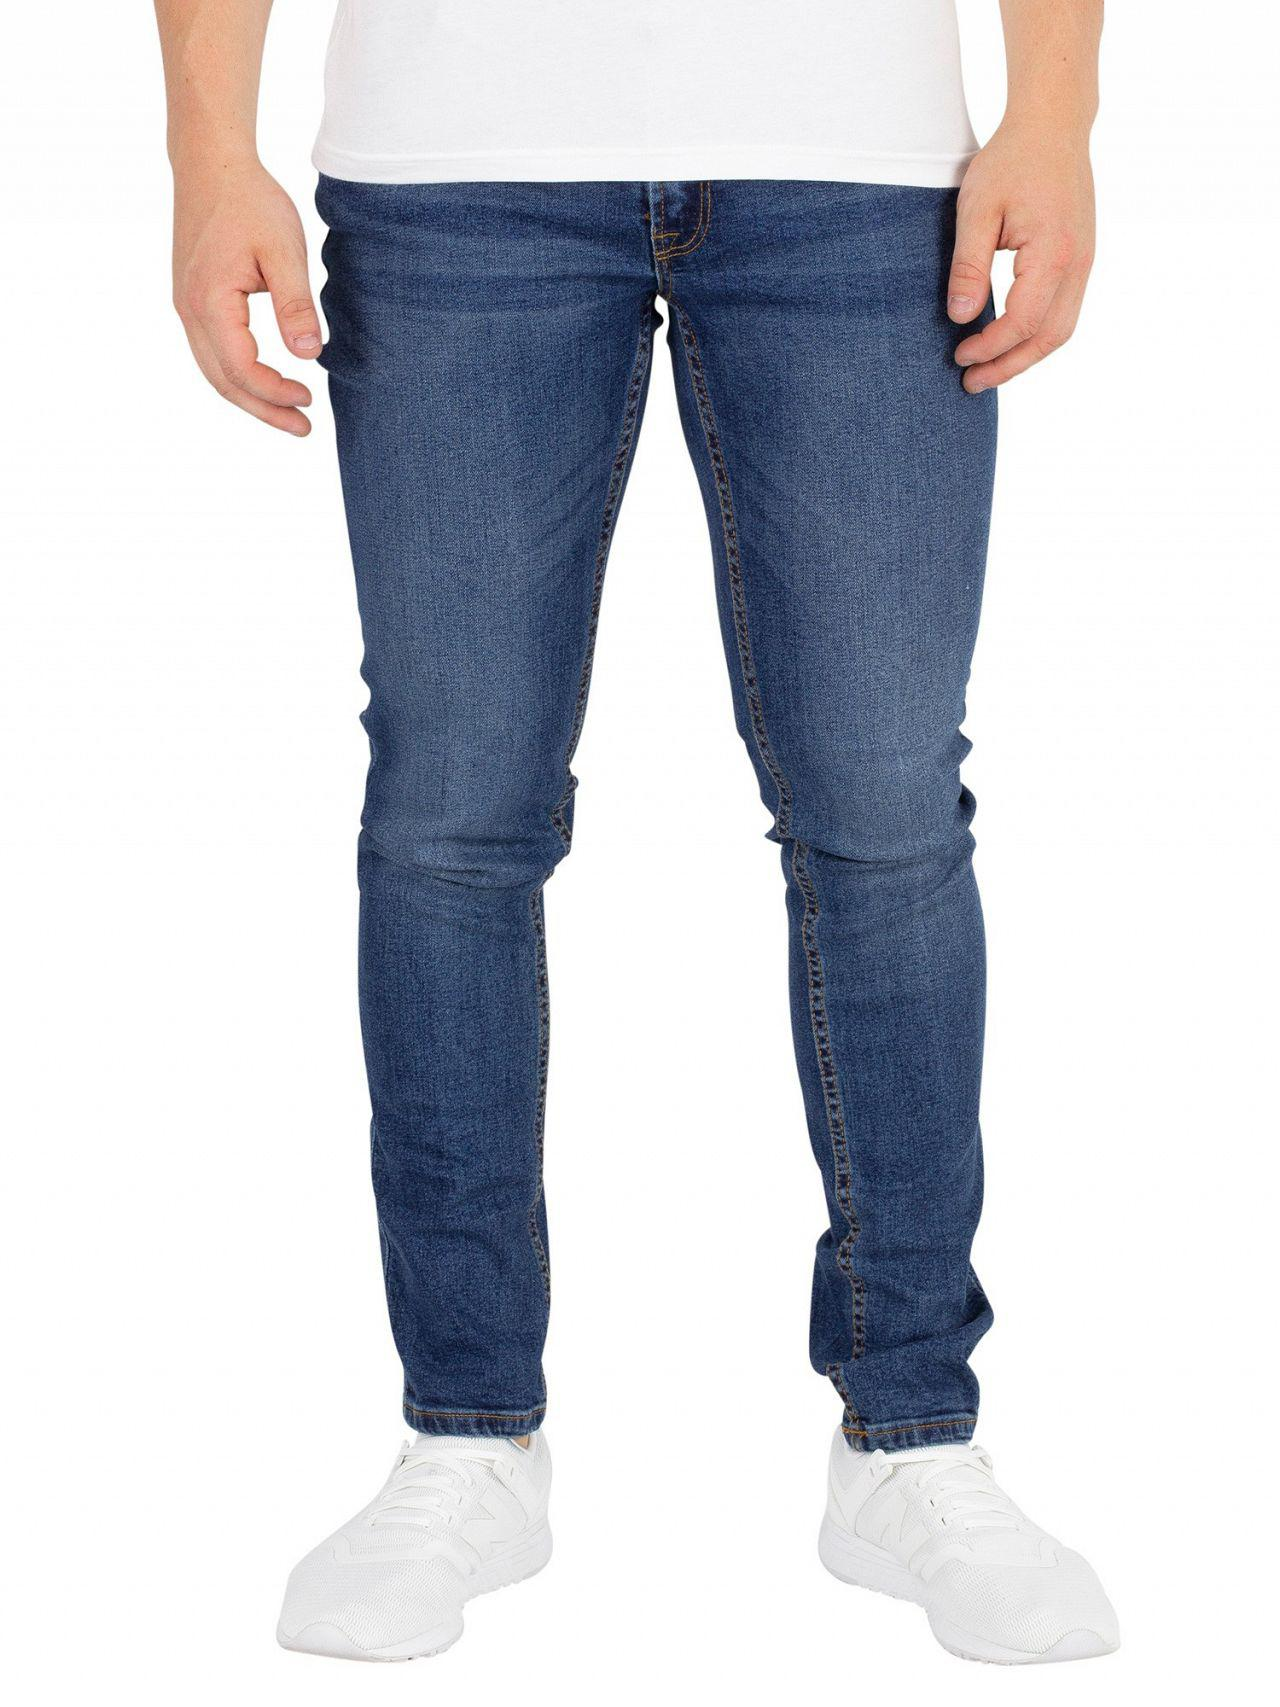 Blue Jack /& Jones Men/'s Liam Original 005 Skinny Jeans